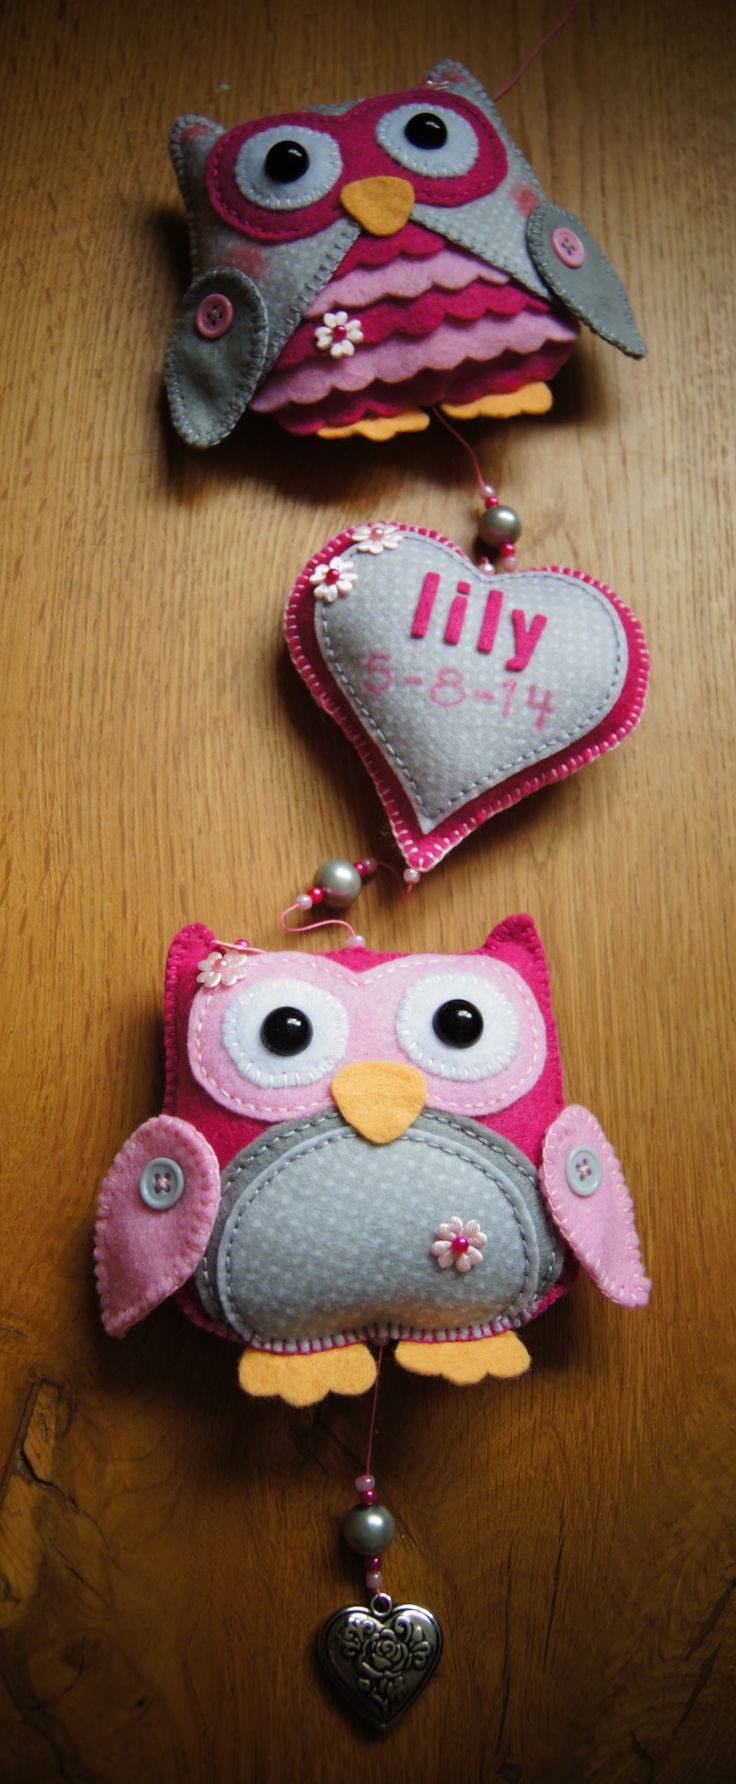 Handmade by JoHo - felt owl  ~~  Design Idea.